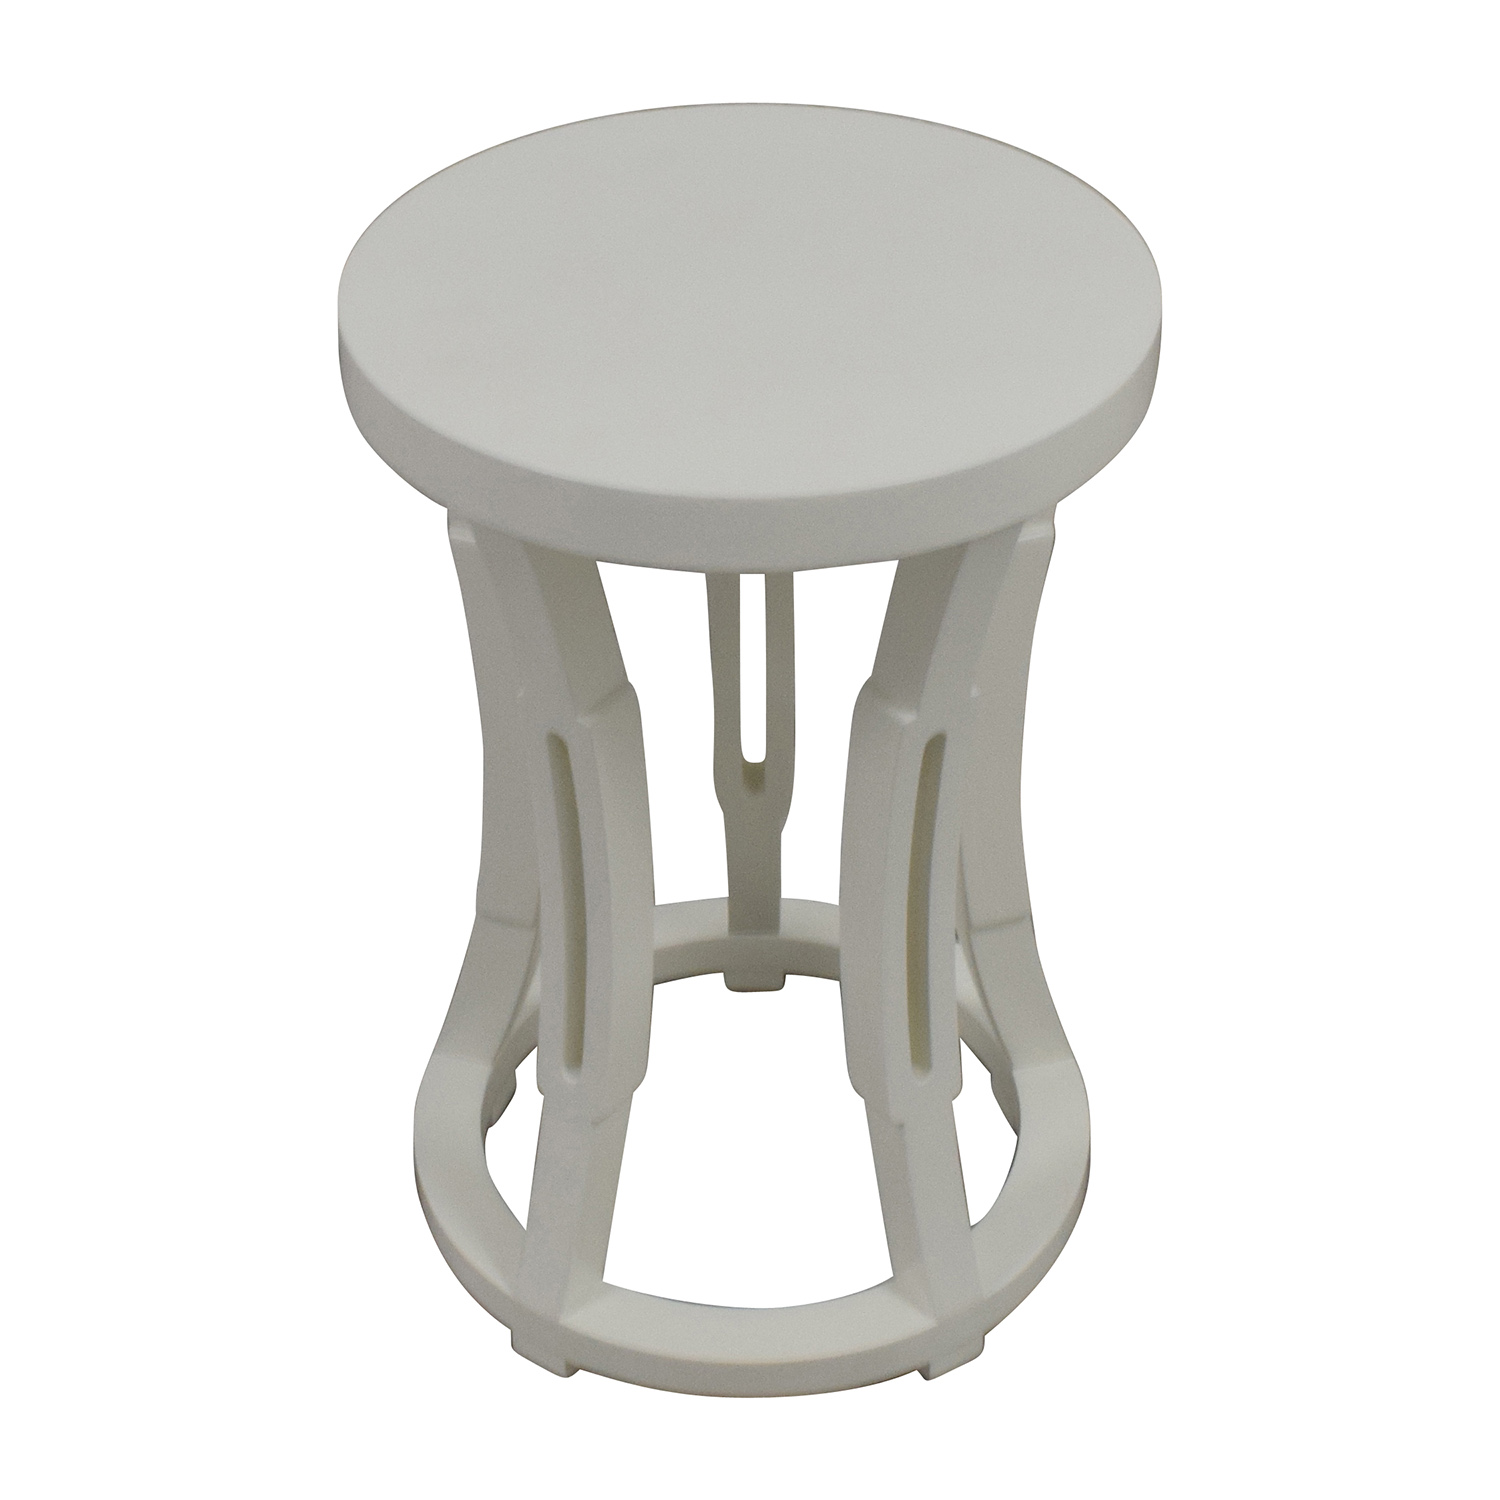 Bungalow 5 Bungalow 5 Hour Glass Stool Side Table or Stool for sale